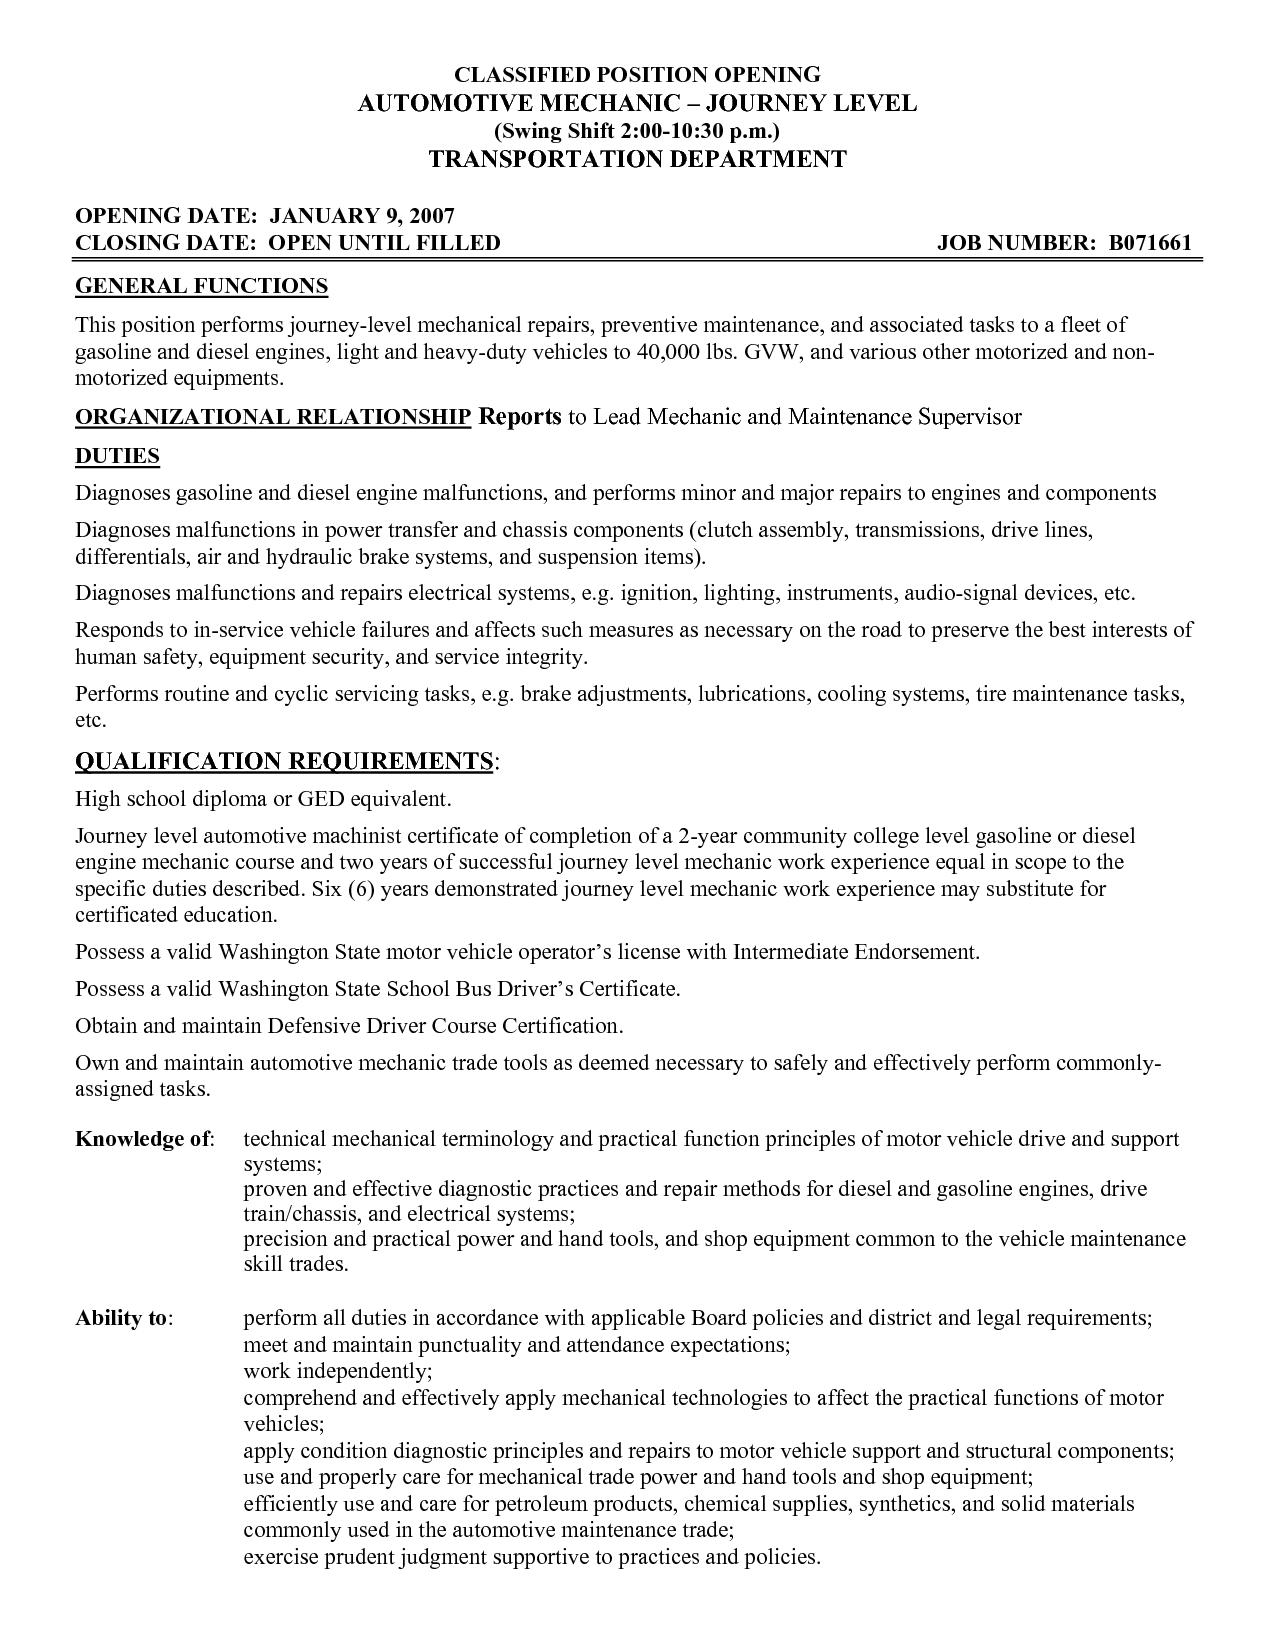 Automotive Mechanic Resume Template